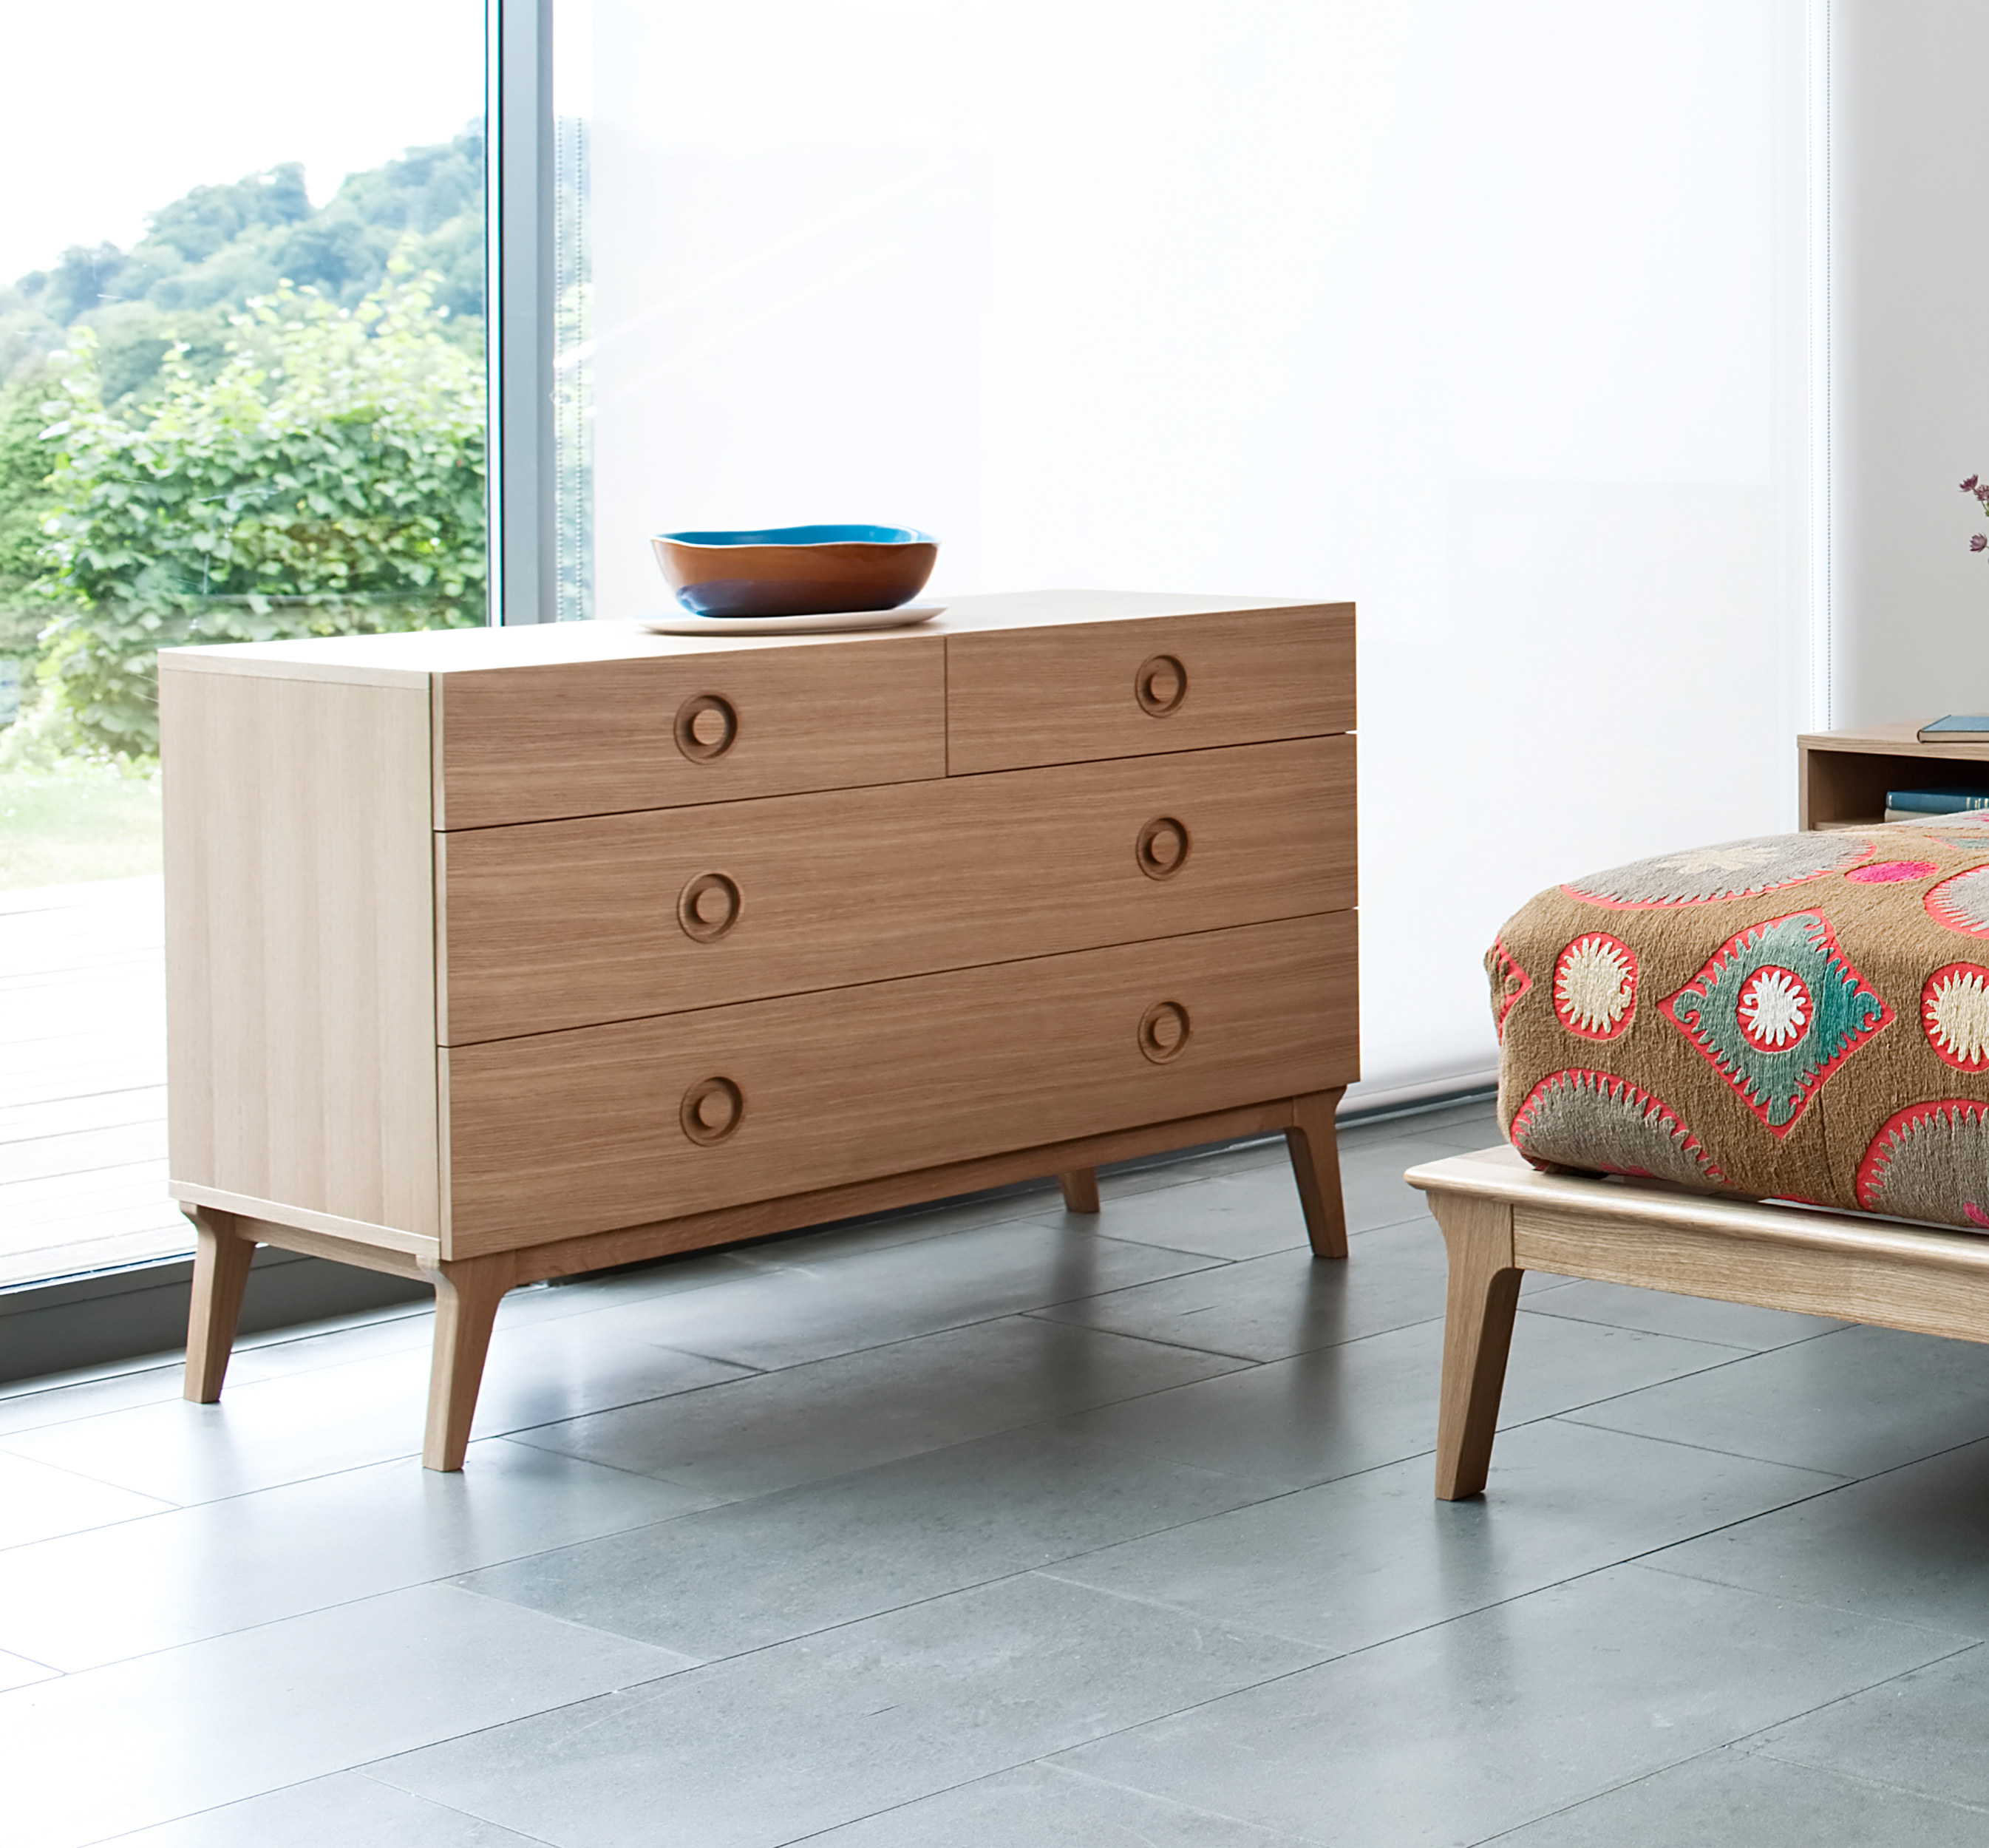 designer-dresser-oak-in-the-retro-style-chest-of-drawers